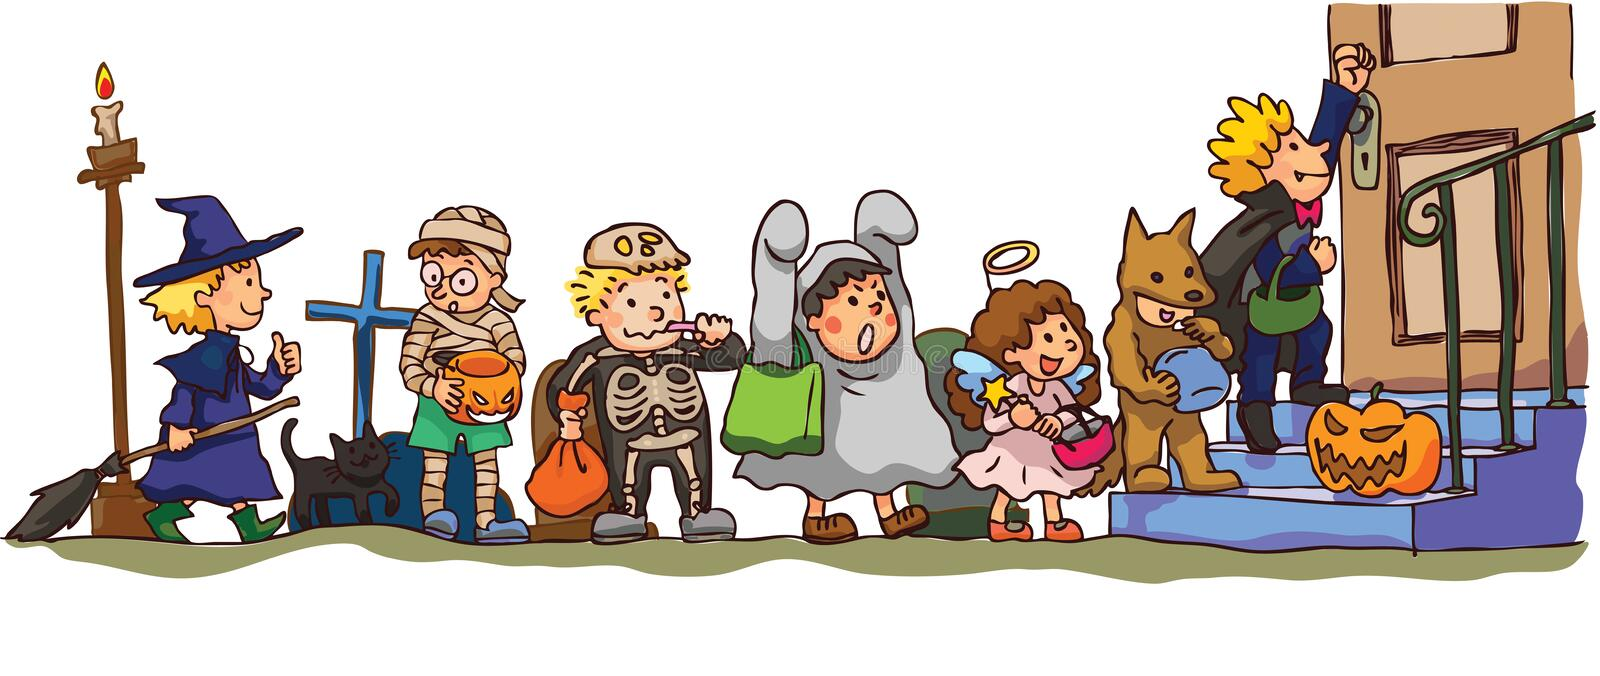 Kids Celerbrating Halloween. Its Trick Or Treat! Royalty Free Stock Images